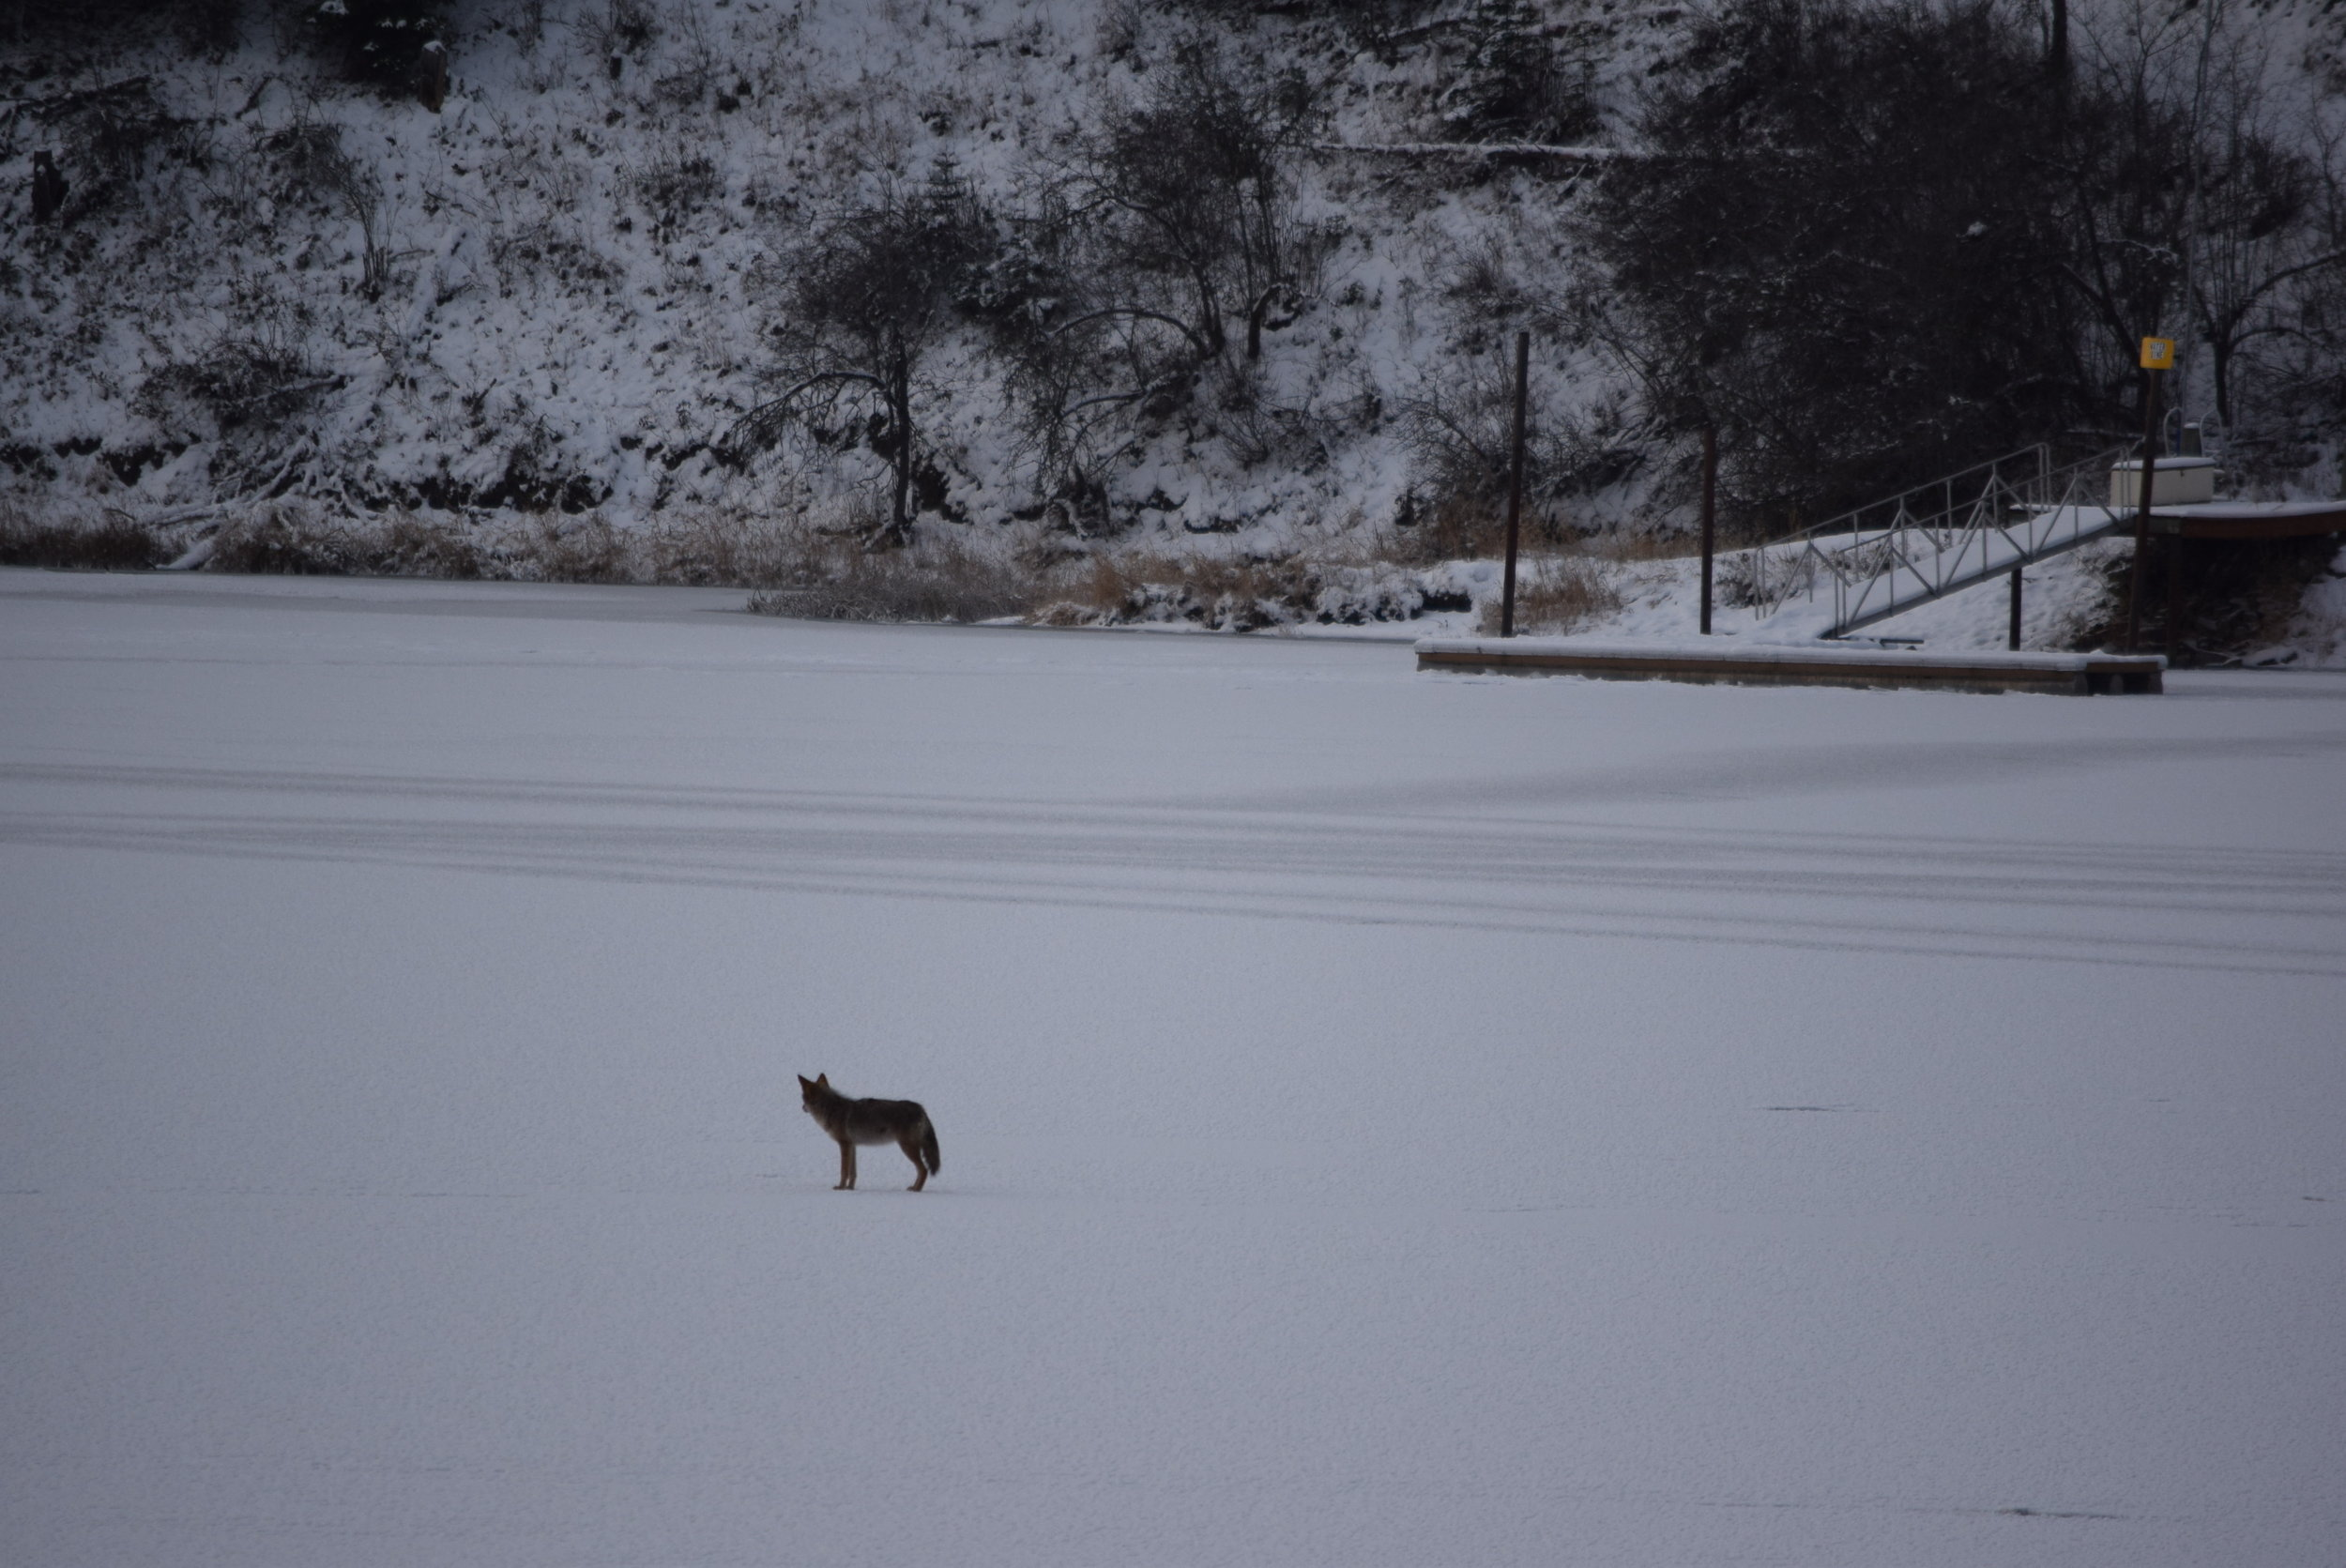 Coyote on the frozen river.